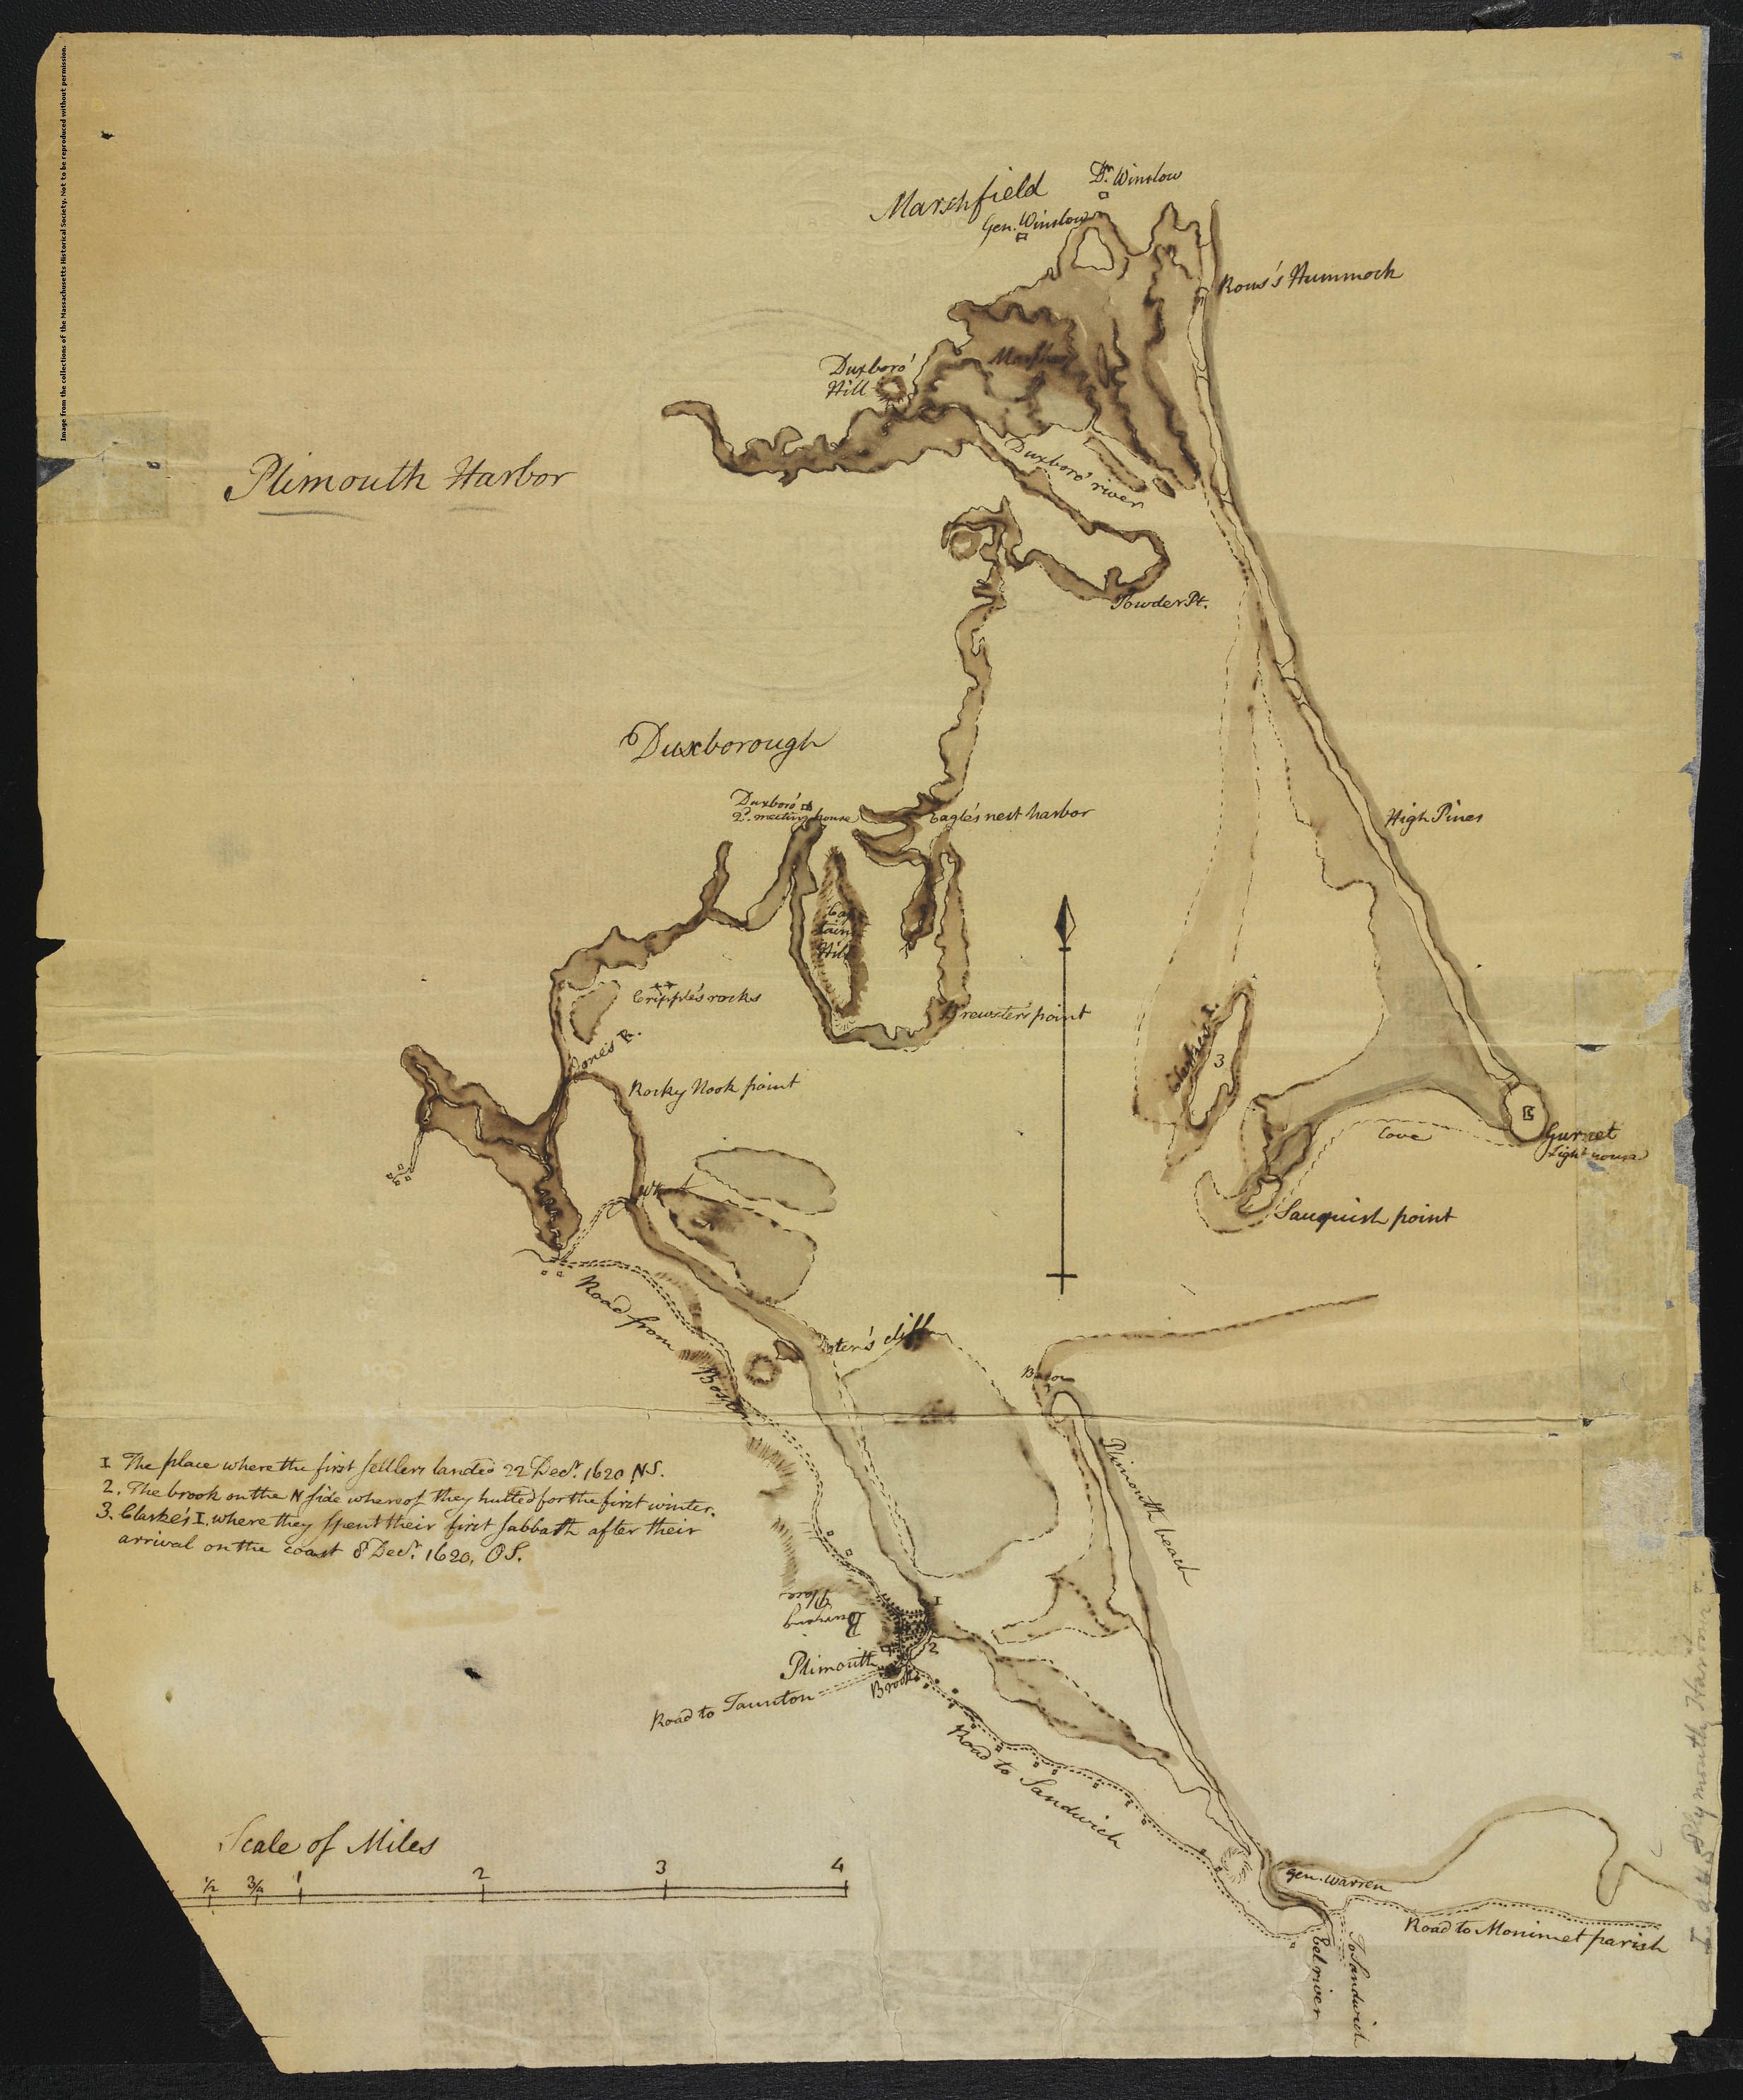 Massachusetts Historical Society Collections Online Manuscript map